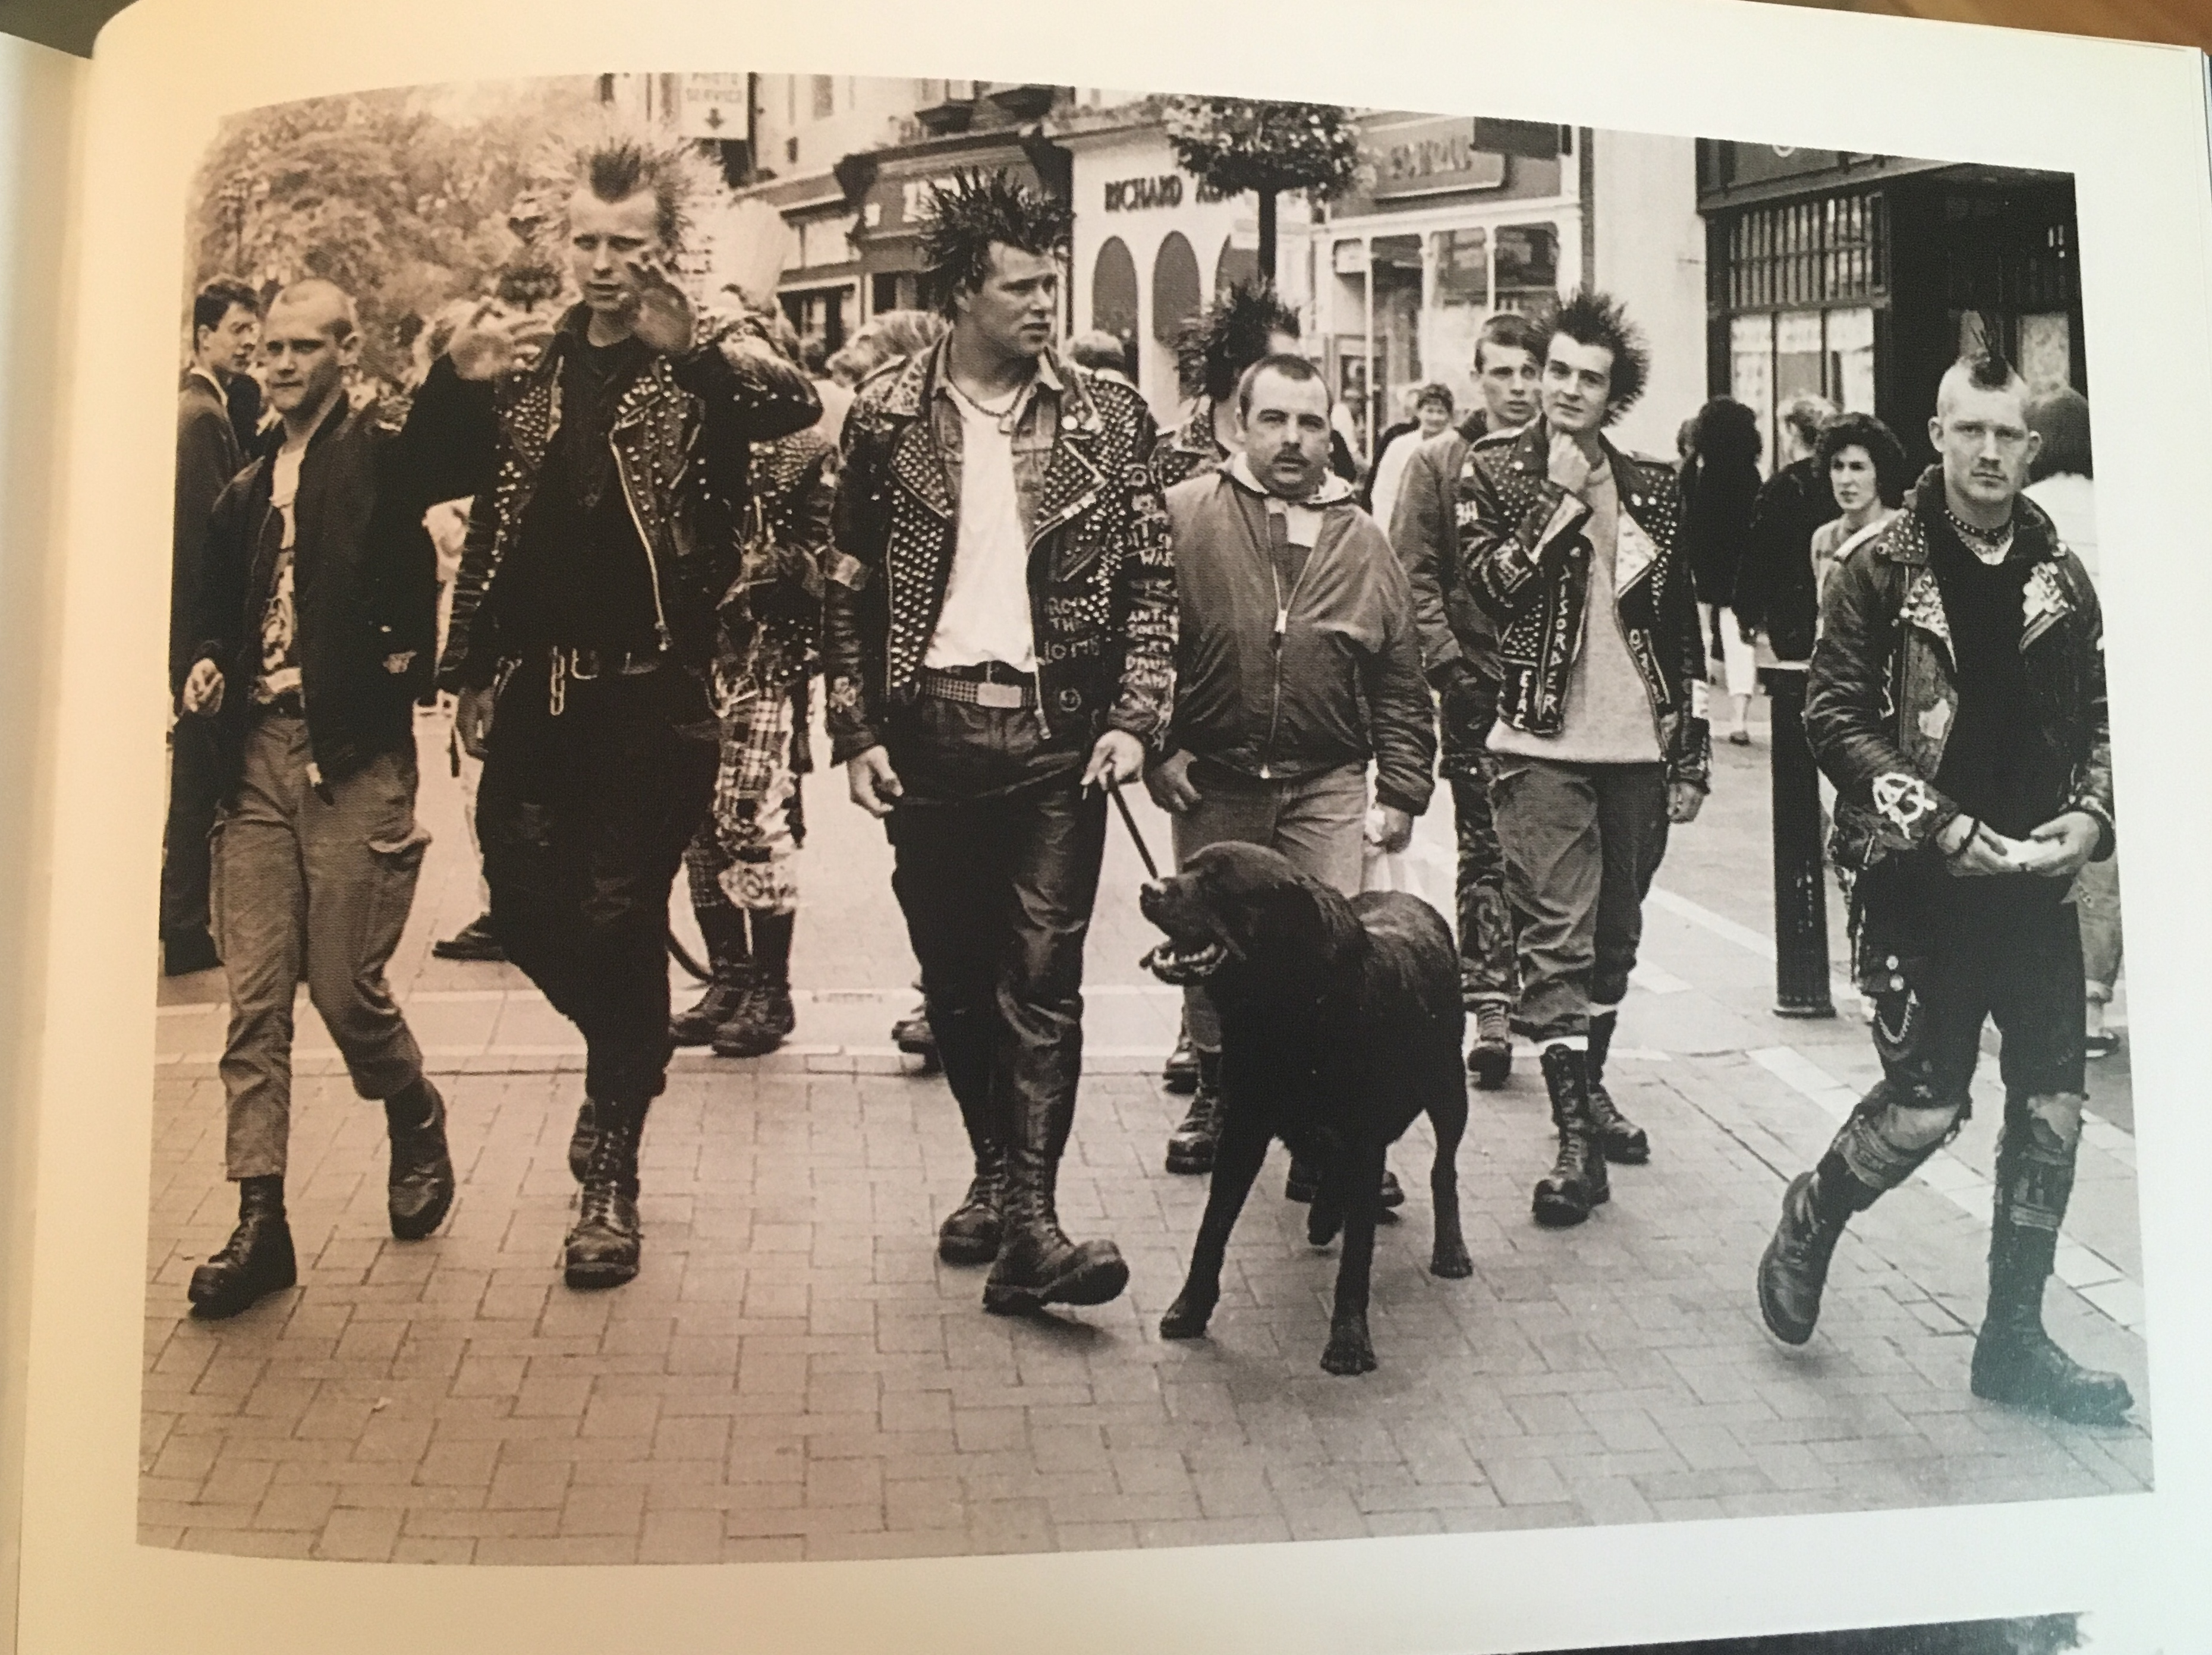 Punks on Grafton Street, c.1991 from the wonderful Where Were You? Dublin Youth Culture and Street Style by Gary O'Neill